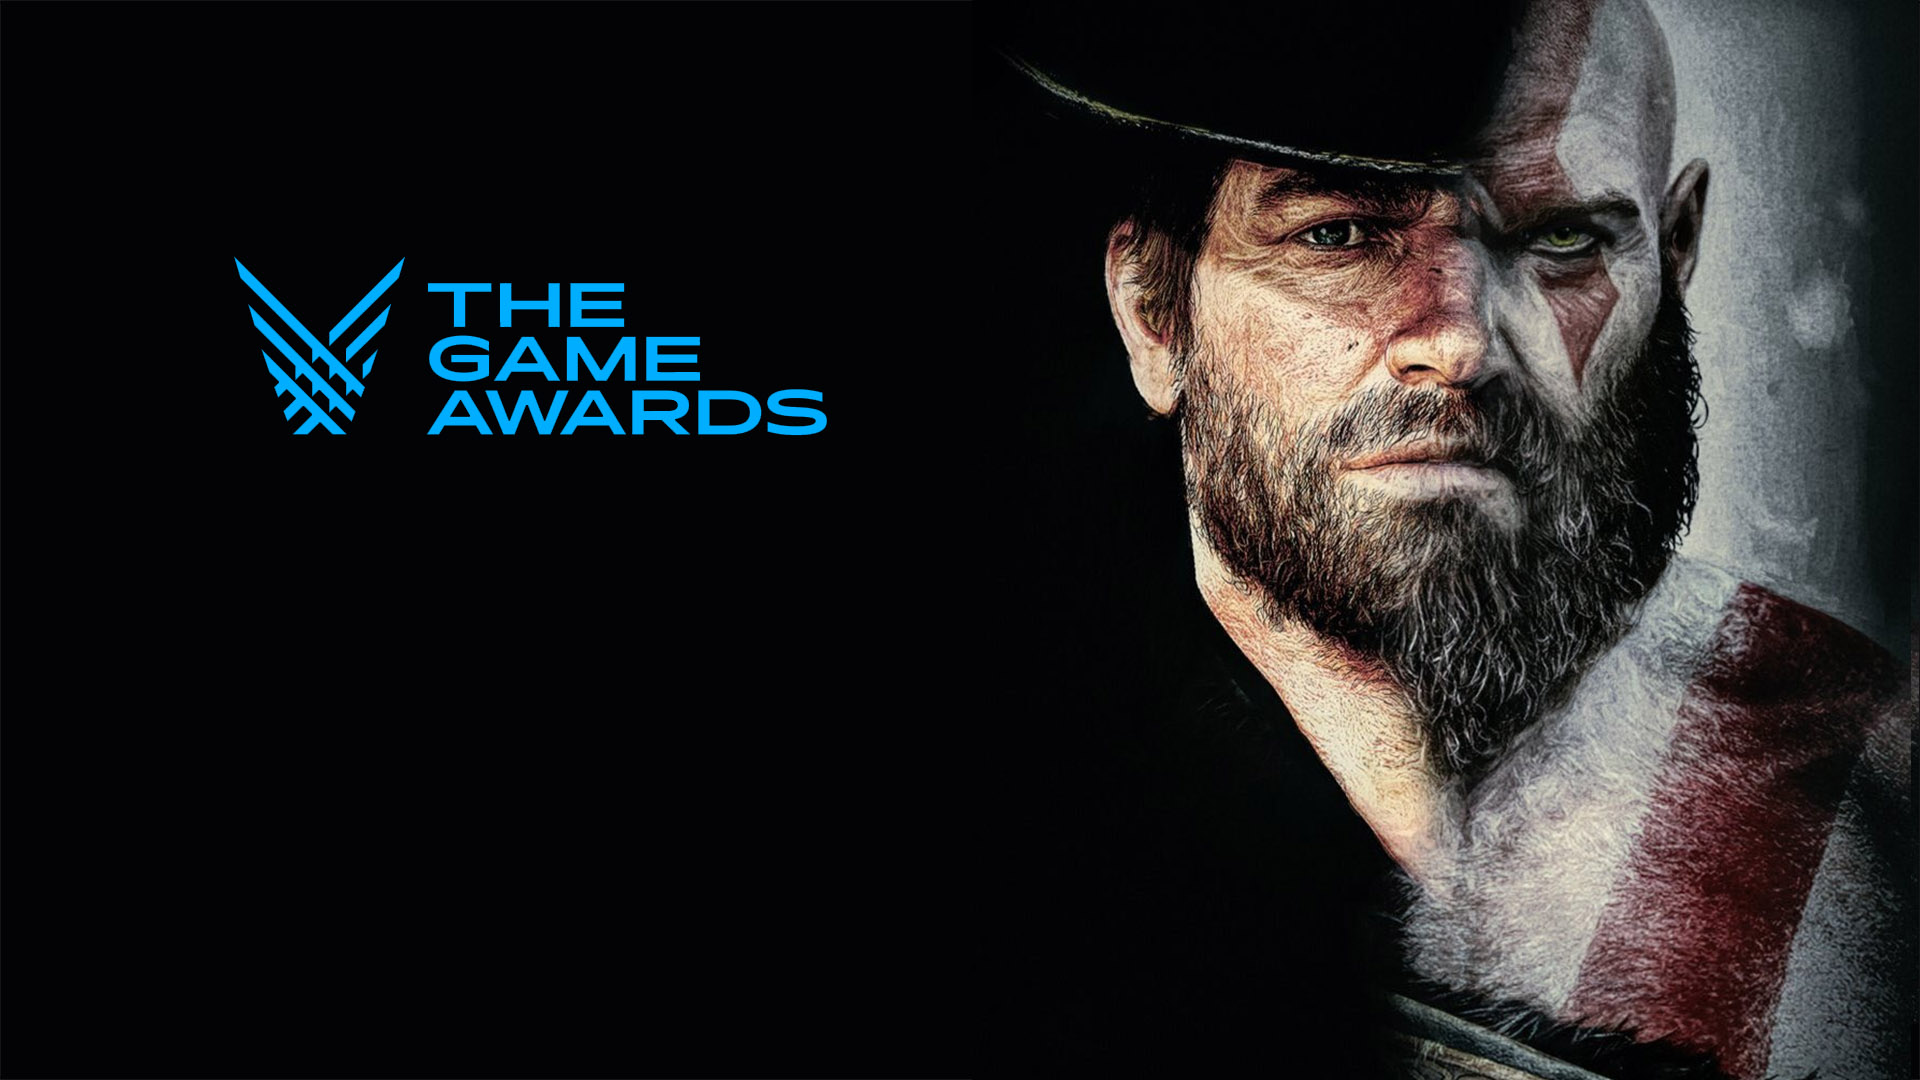 Game Awards Rockstar Red Dead Redemption II et God of War